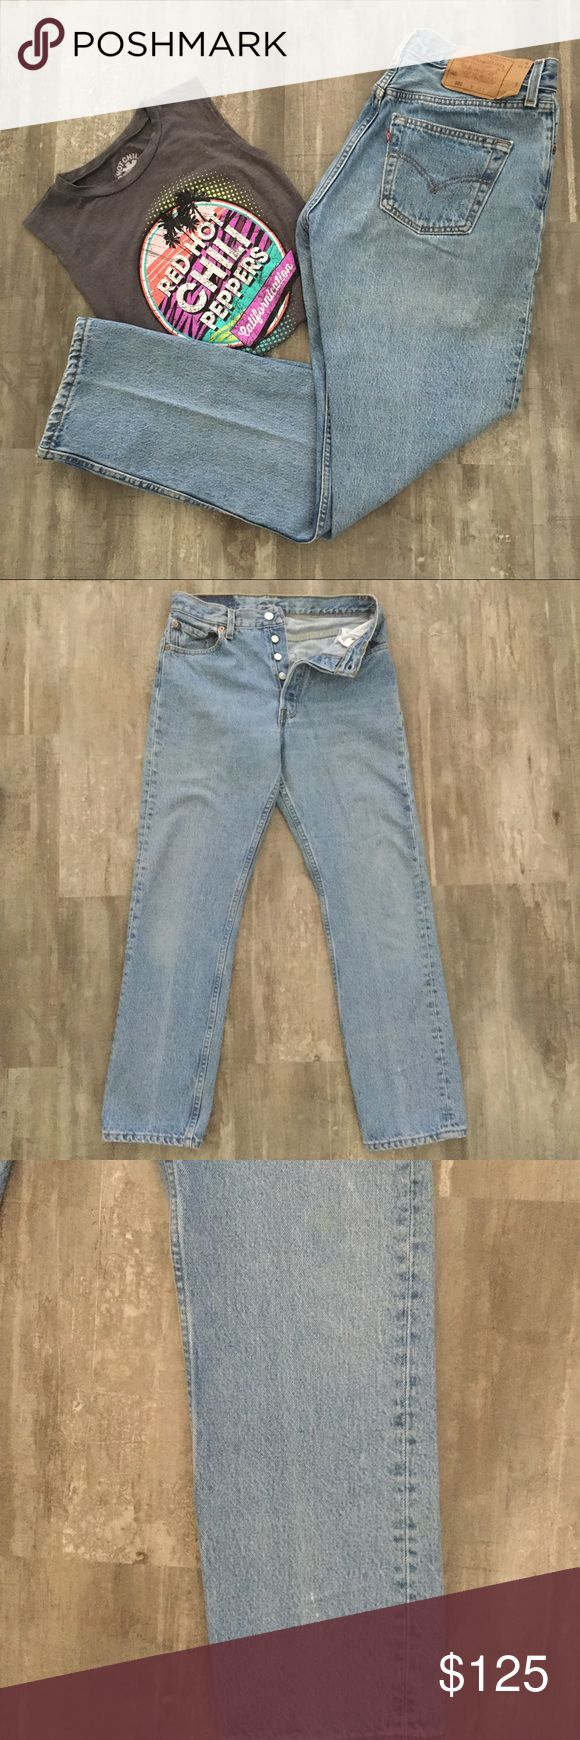 Levi's👖Vintage 501 Button Fly/Made in 🇺🇸 Amazing WOMEN'S Vintage Levi 501 Button fly jeans in very good preloved condition.  These are the last of the 501's to be Made in the USA.  An actual date is impossible to determine but could go back to 1993, the latest. A few minor yellowish stains, may or may not come out, Dawn dish soap works best. Please enlarge photos. 100% cotton, heavy denim, no stretch. Compare measurements to your own jeans to determine fit, would best fit 27/28, IMO…